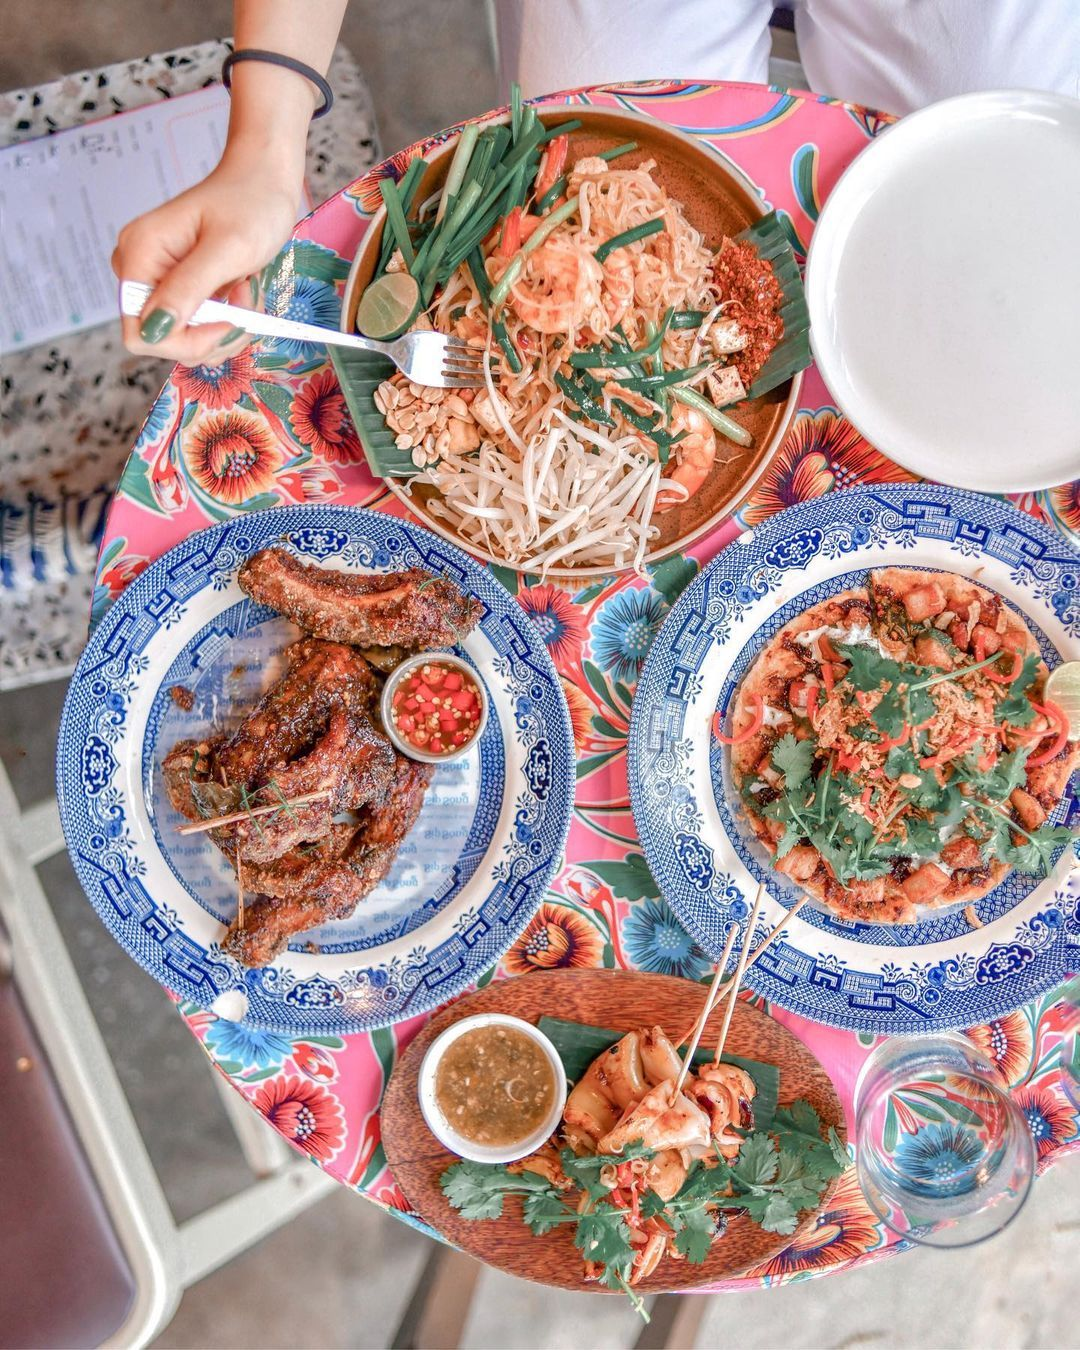 The Best Thai Restaurants In Hong Kong